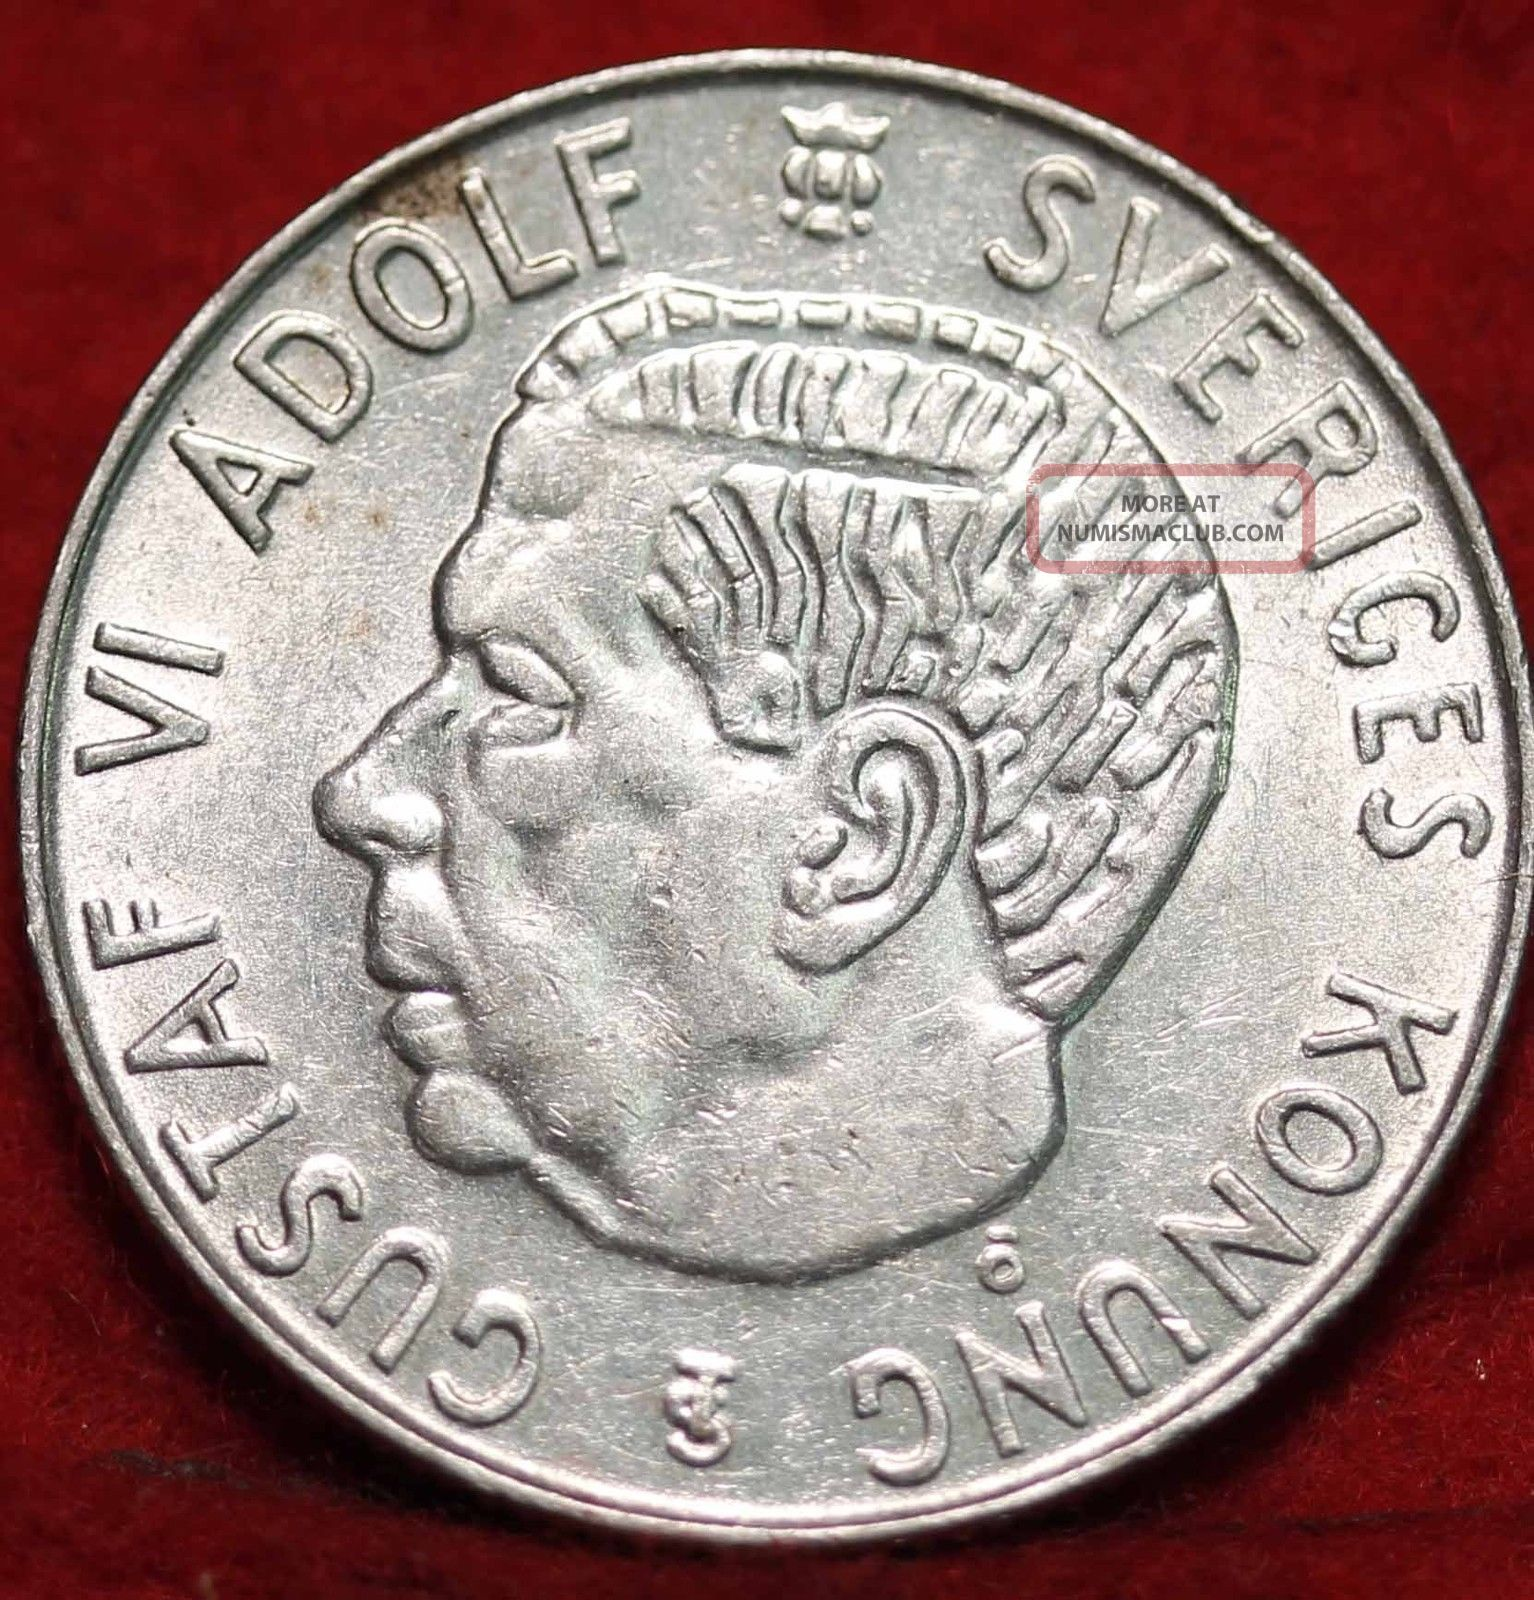 1957 Sweden Silver 1 Krona Foreign Coin S/h